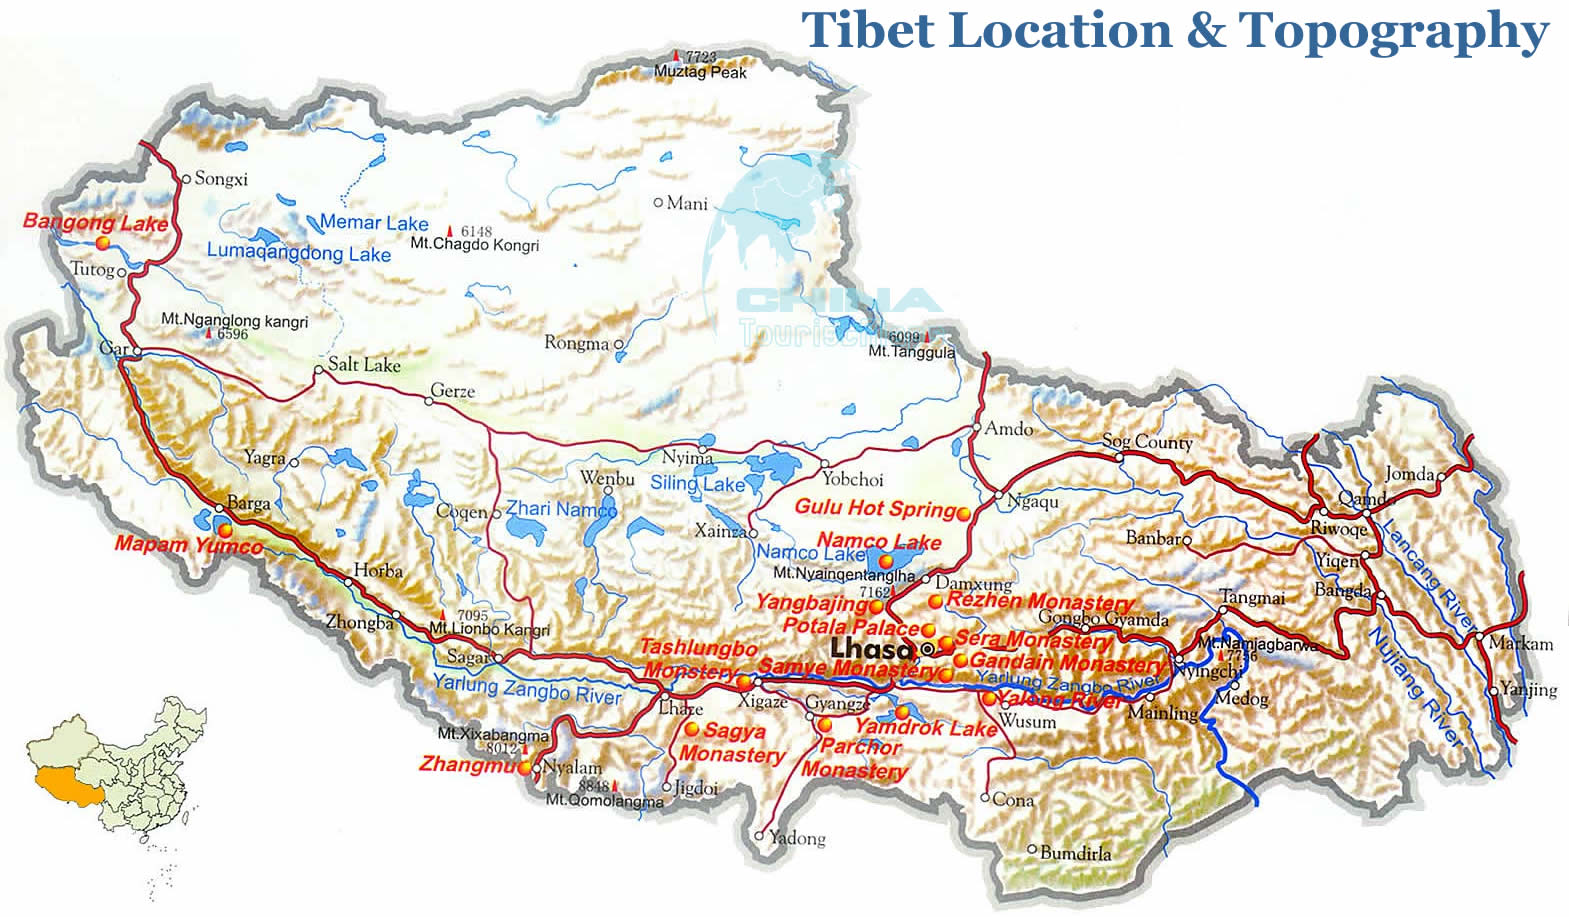 Tibet-Location-and-Topography